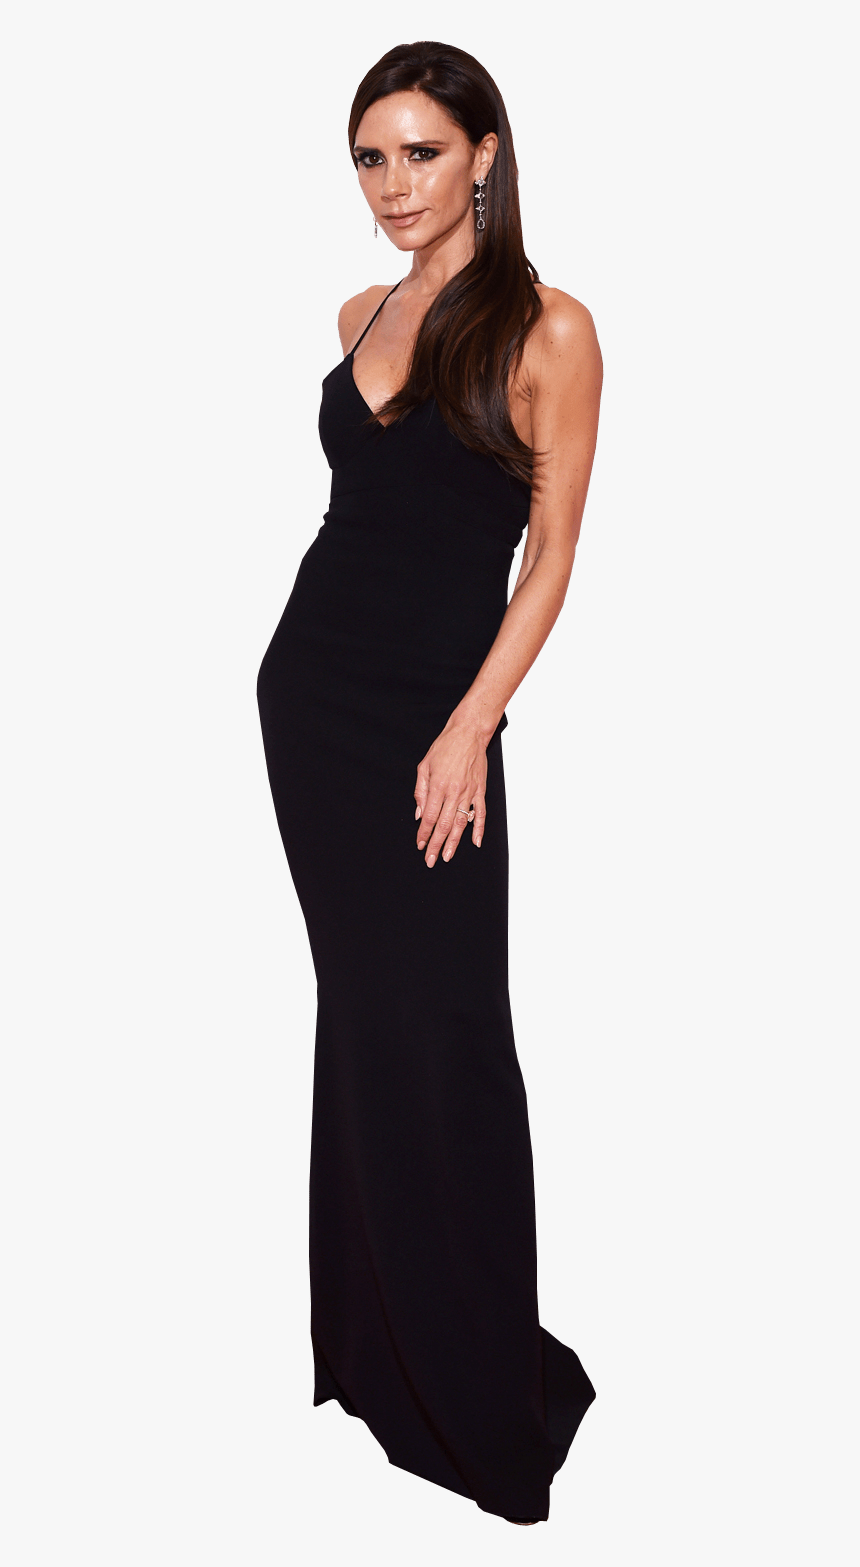 Victoria Beckham Png - Victoria Beckham Transparent Background Victoria Beckham ...